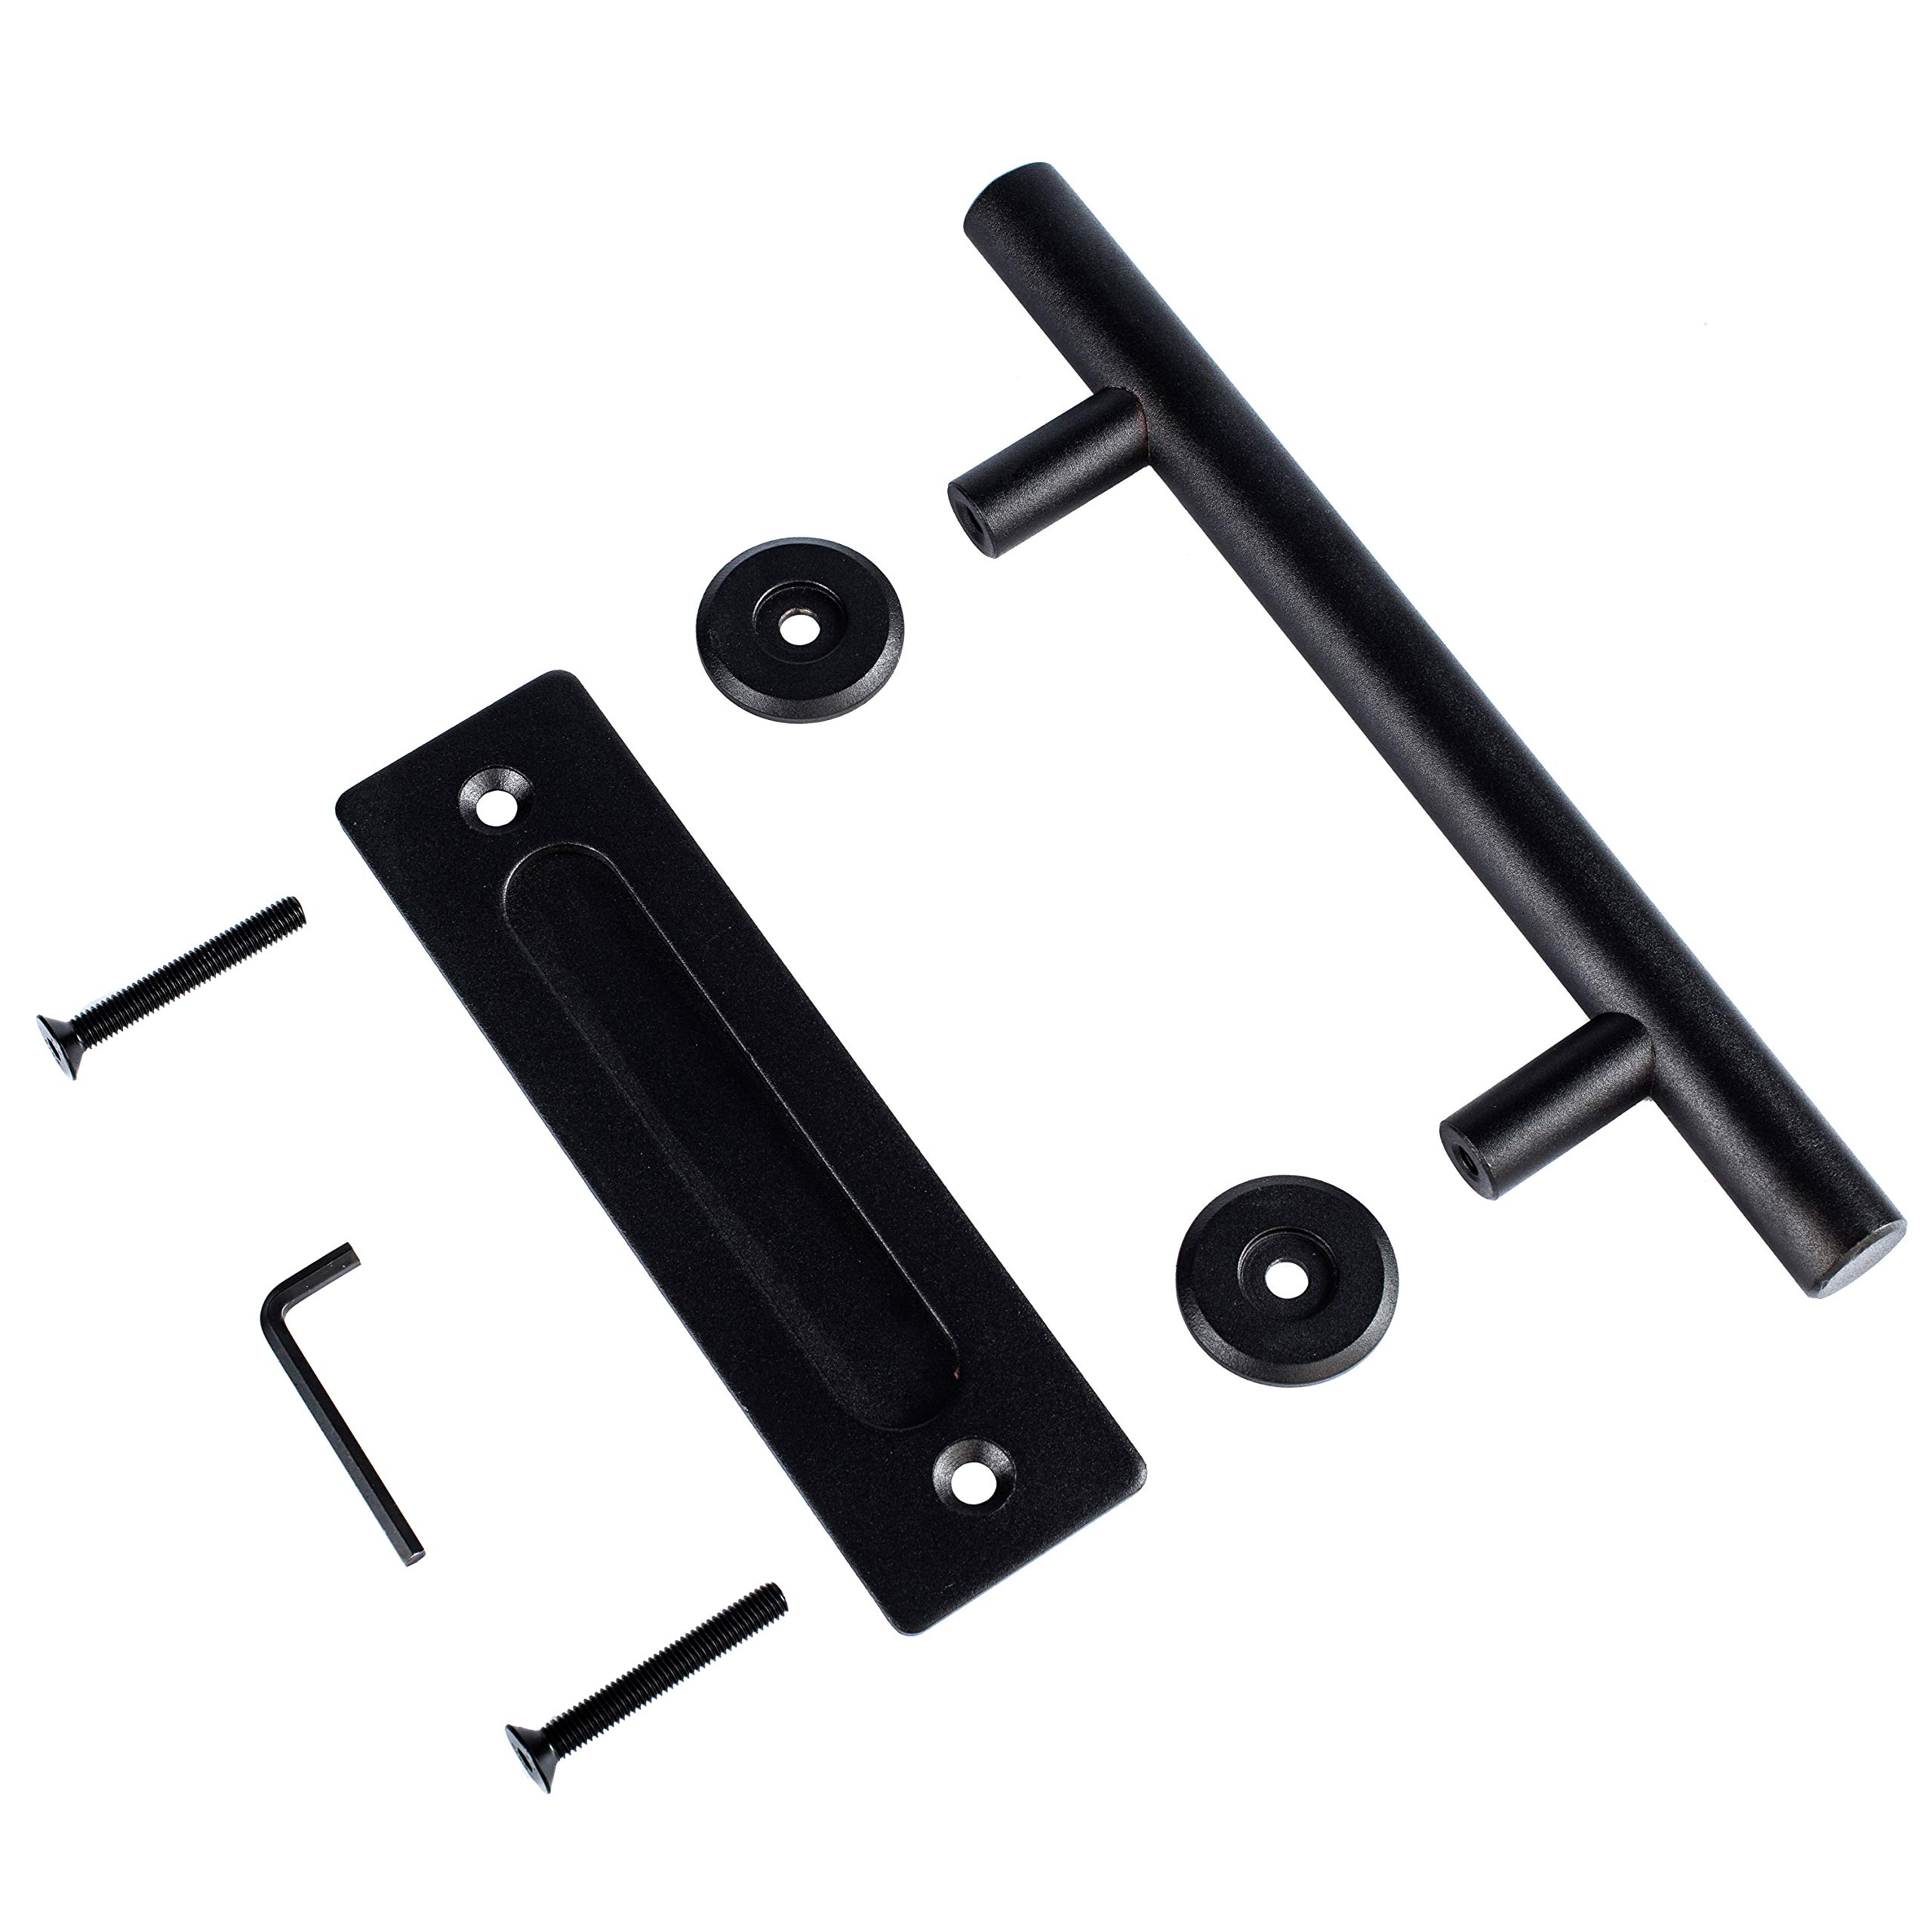 12'' Large Barn Door Handle Pull and Flush Set - Black Stainless Steel Sliding Gate Hardware for Interior and Exterior Doors, Easy to Install and Heavy Duty - 2 Sets of Mount Screws Included